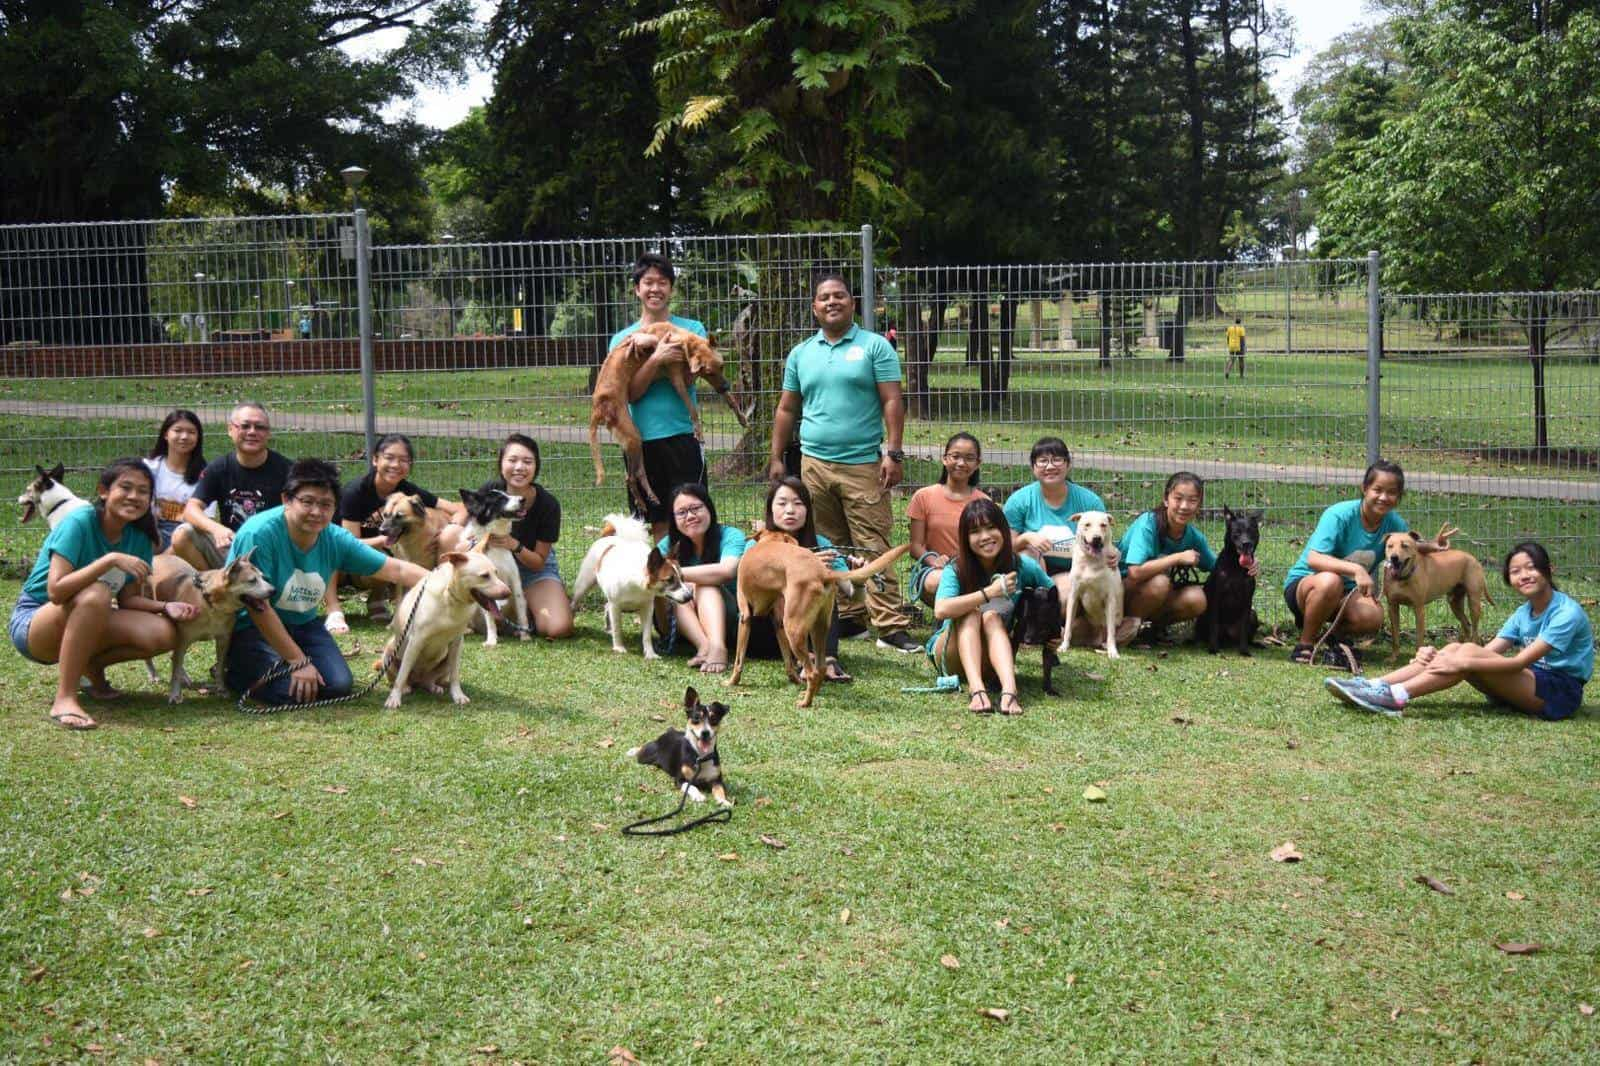 A group of volunteers posing with dogs on a field